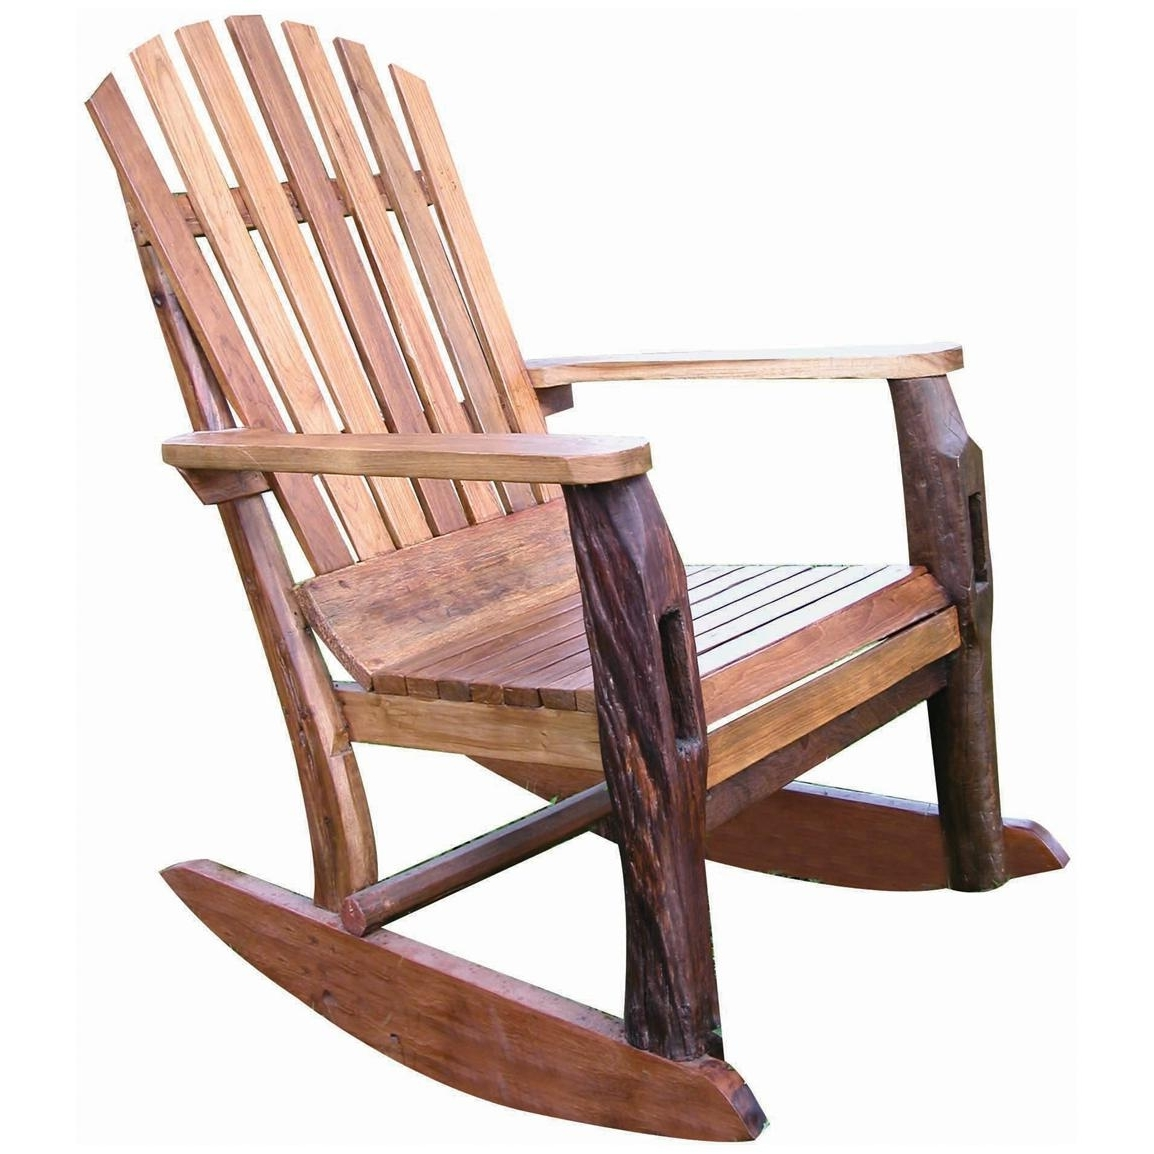 2018 Cozy Inspiration Outdoor Wooden Rocking Chairs Plans For Chair Large With Regard To Wooden Patio Rocking Chairs (View 1 of 20)